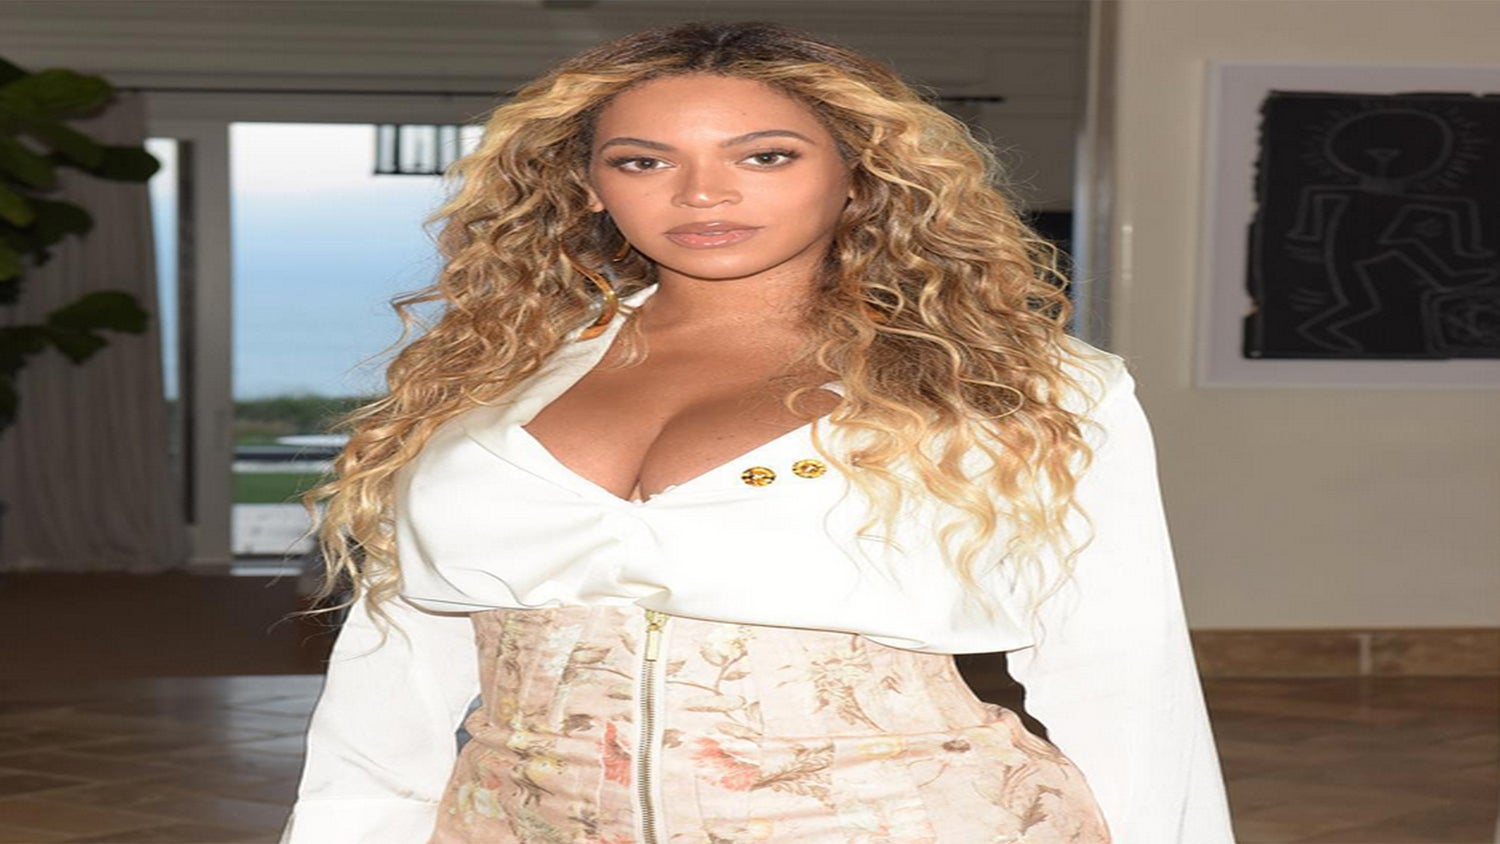 Beyoncé Hasn't Started to Work Out Yet After Giving Birth to Twins: Source